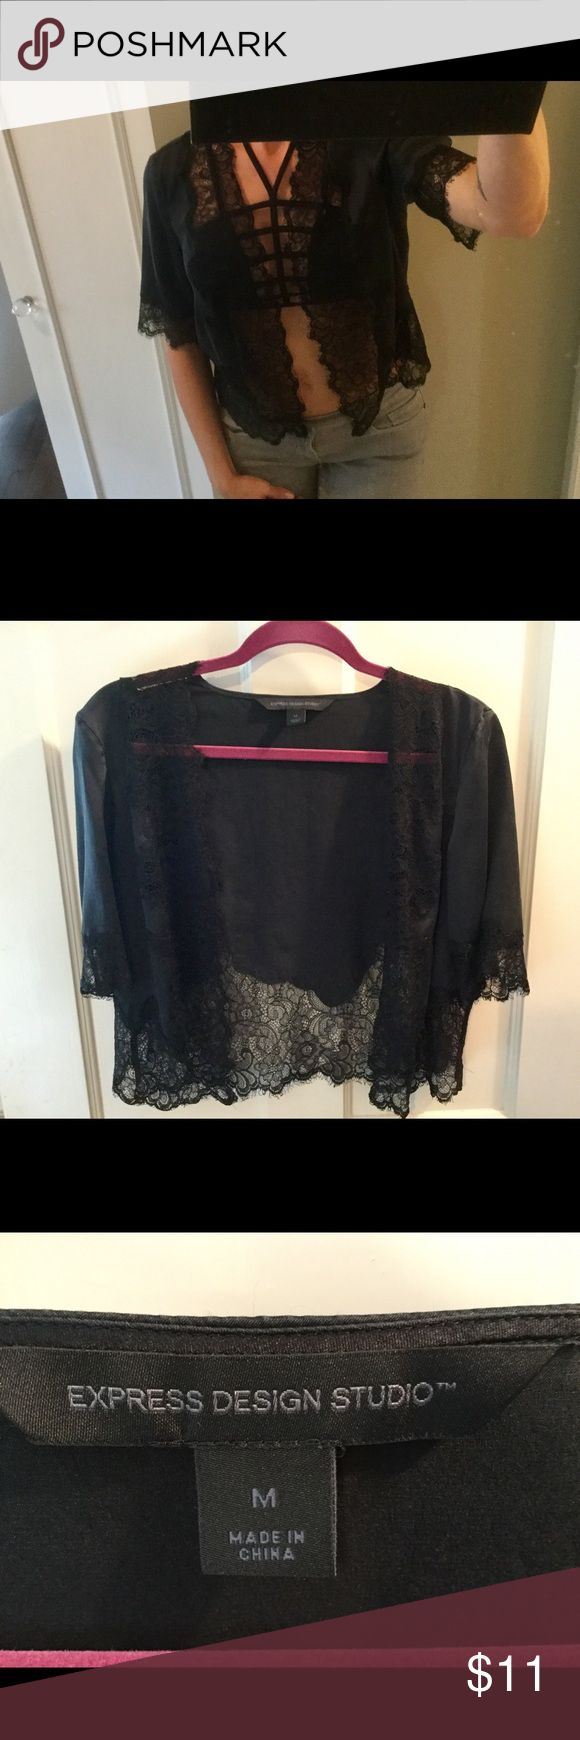 Express satin & lingerie top Express top, size Medium, button free, hangs open. Wear the look of lingerie with a cute pair of jeans and boots!  Pairs well with the leopard crossbody purse I'm selling. I love to mix romantic with edgy. PRICE has been dropped so PRICE is firm unless bundled. Thanks. Have fun 💋 Express Tops Blouses